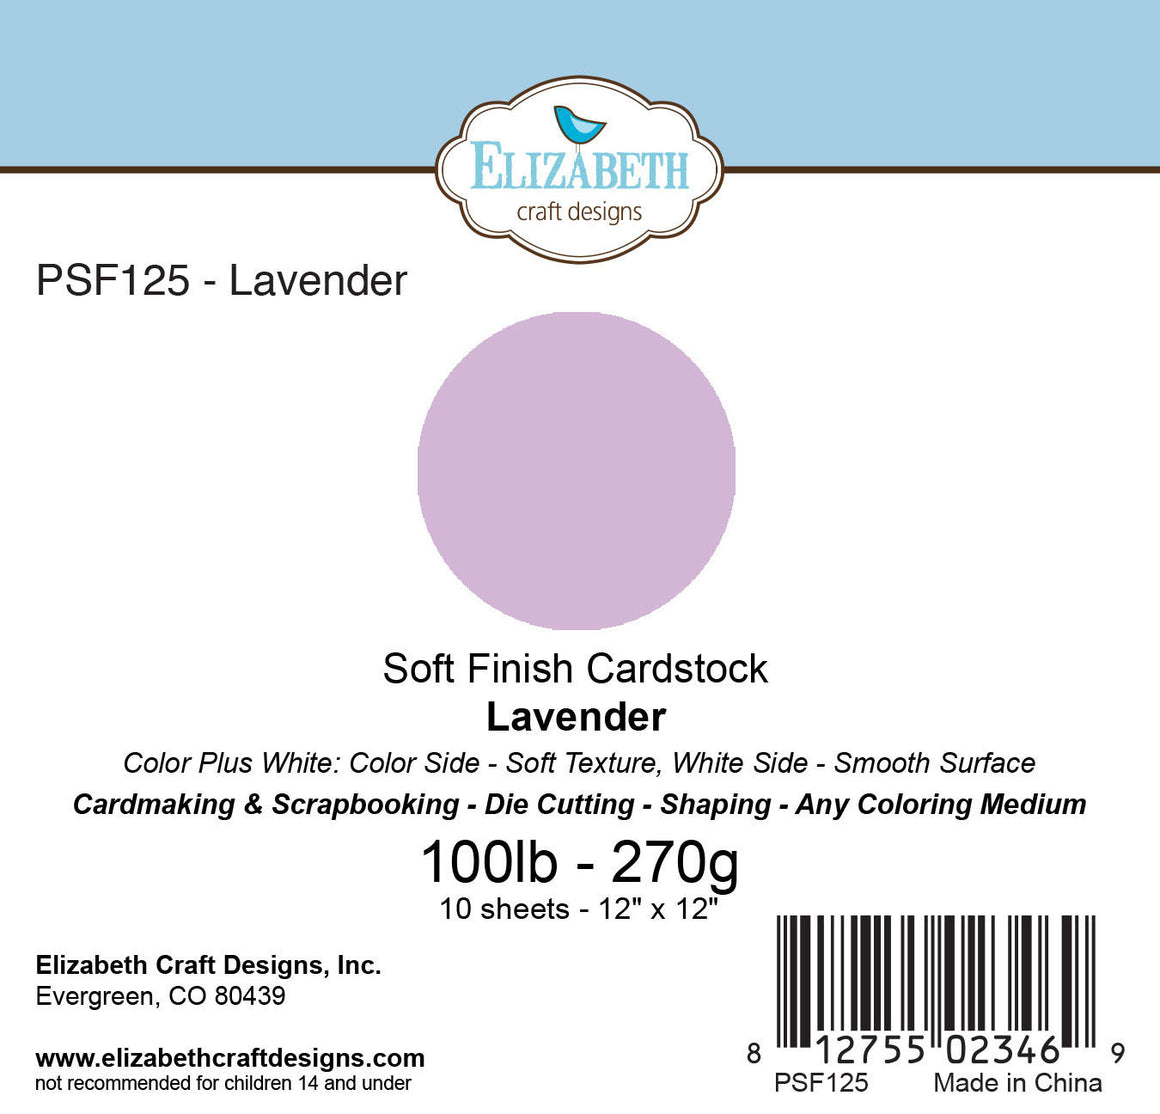 Soft Finish Cardstock, Lavender